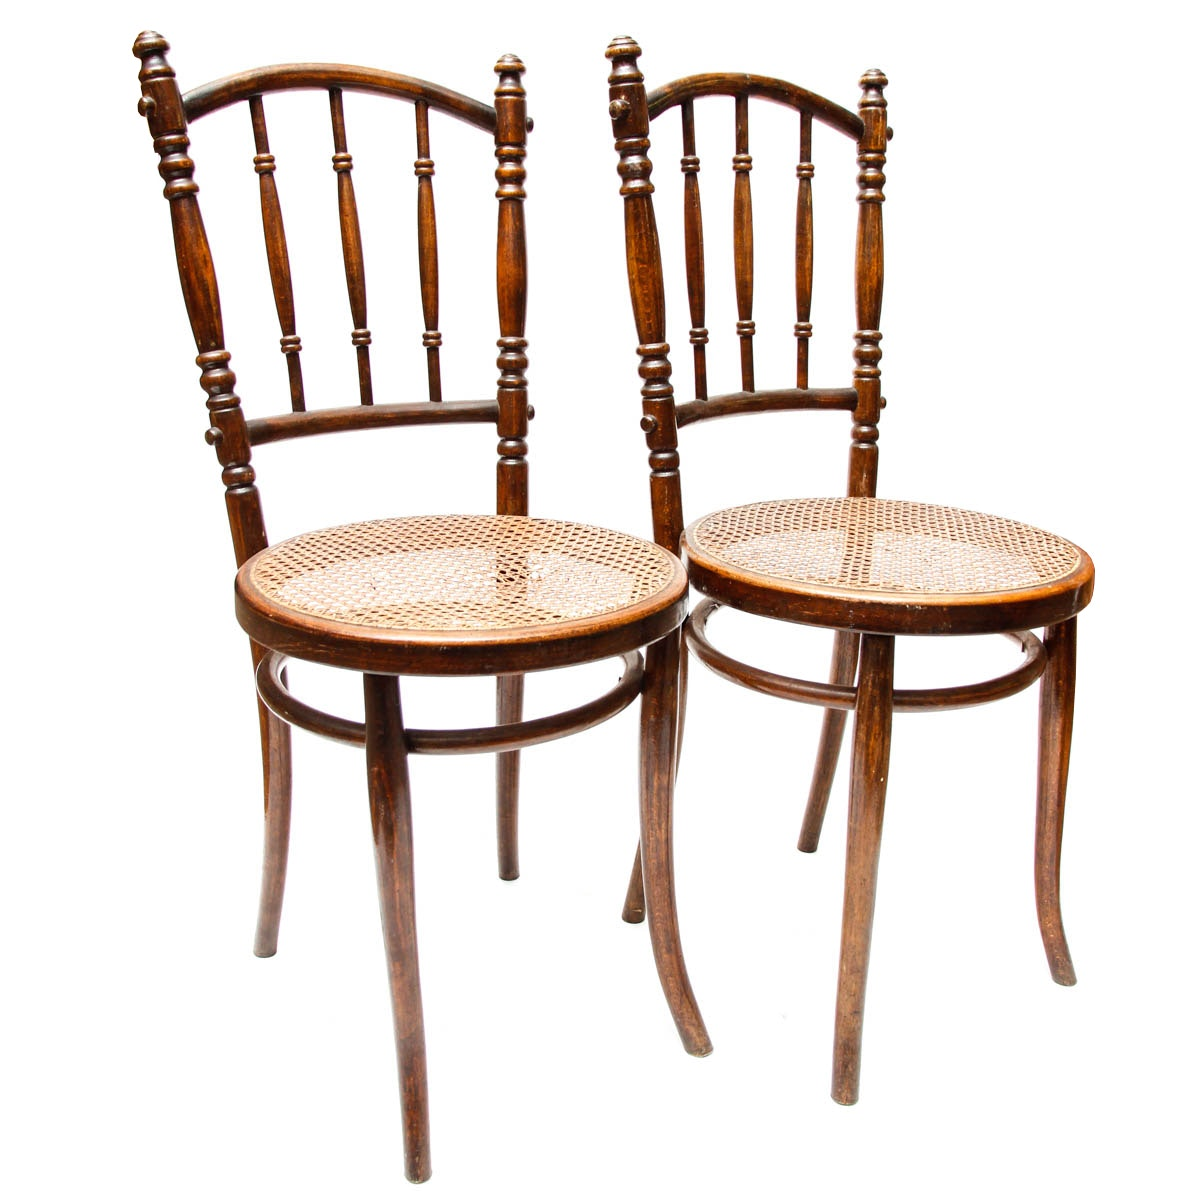 Early 20th Century Chairs With Cane Seats in Walnut Finish